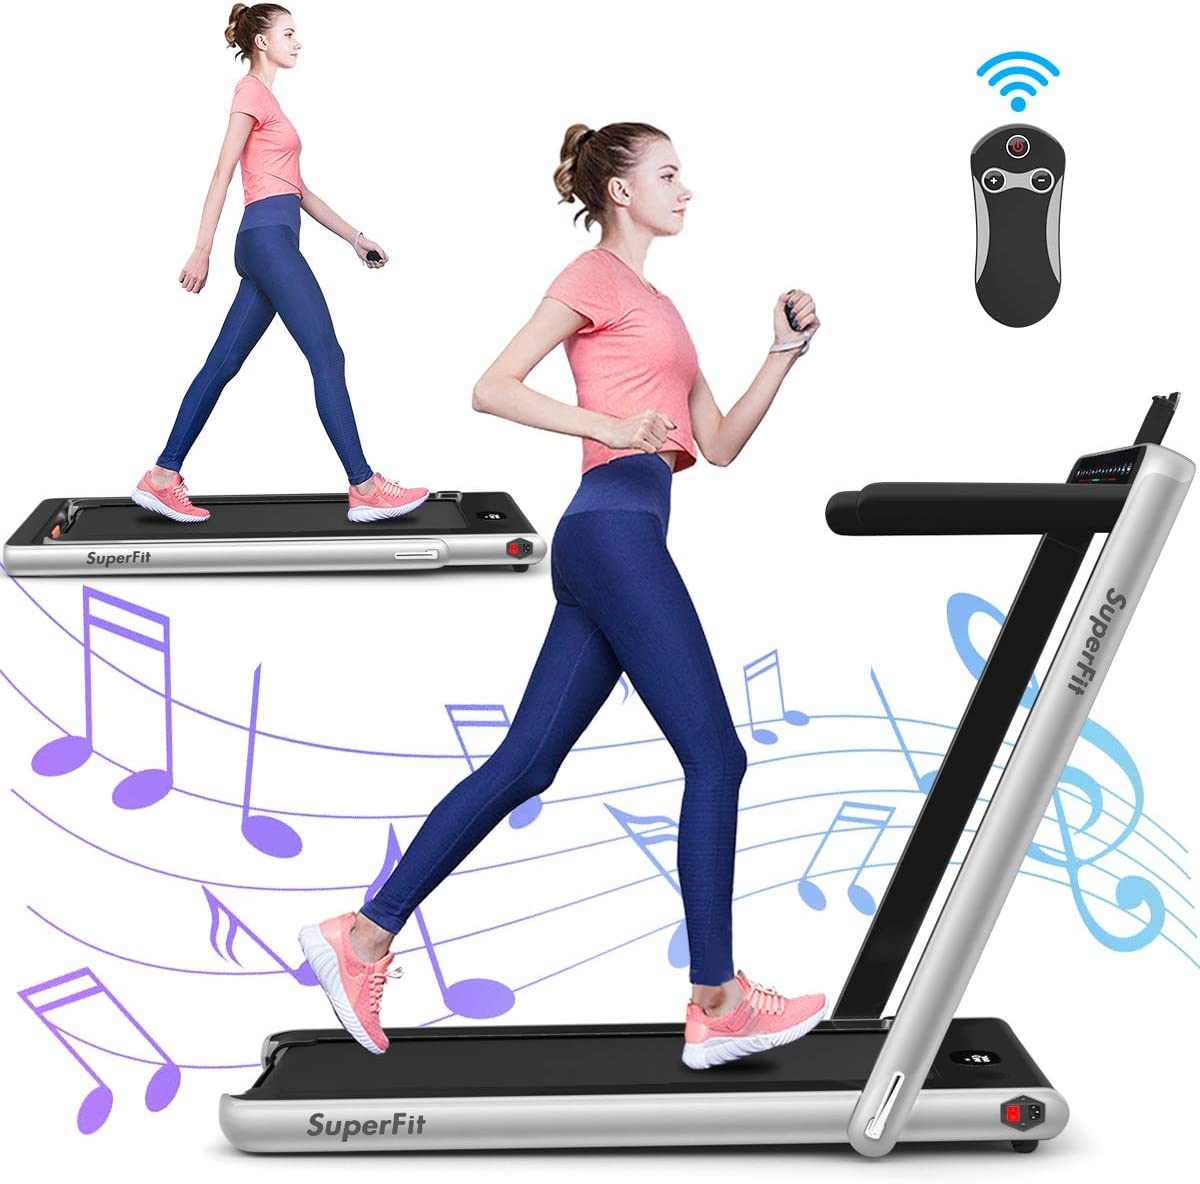 GYMAX 2 in 1 Under Desk Treadmill, 2.25HP Folding Walking Jogging Machine with Dual Display, Bluetooth Speaker Remote Controller, Electric Motorized Treadmill for Home Gym